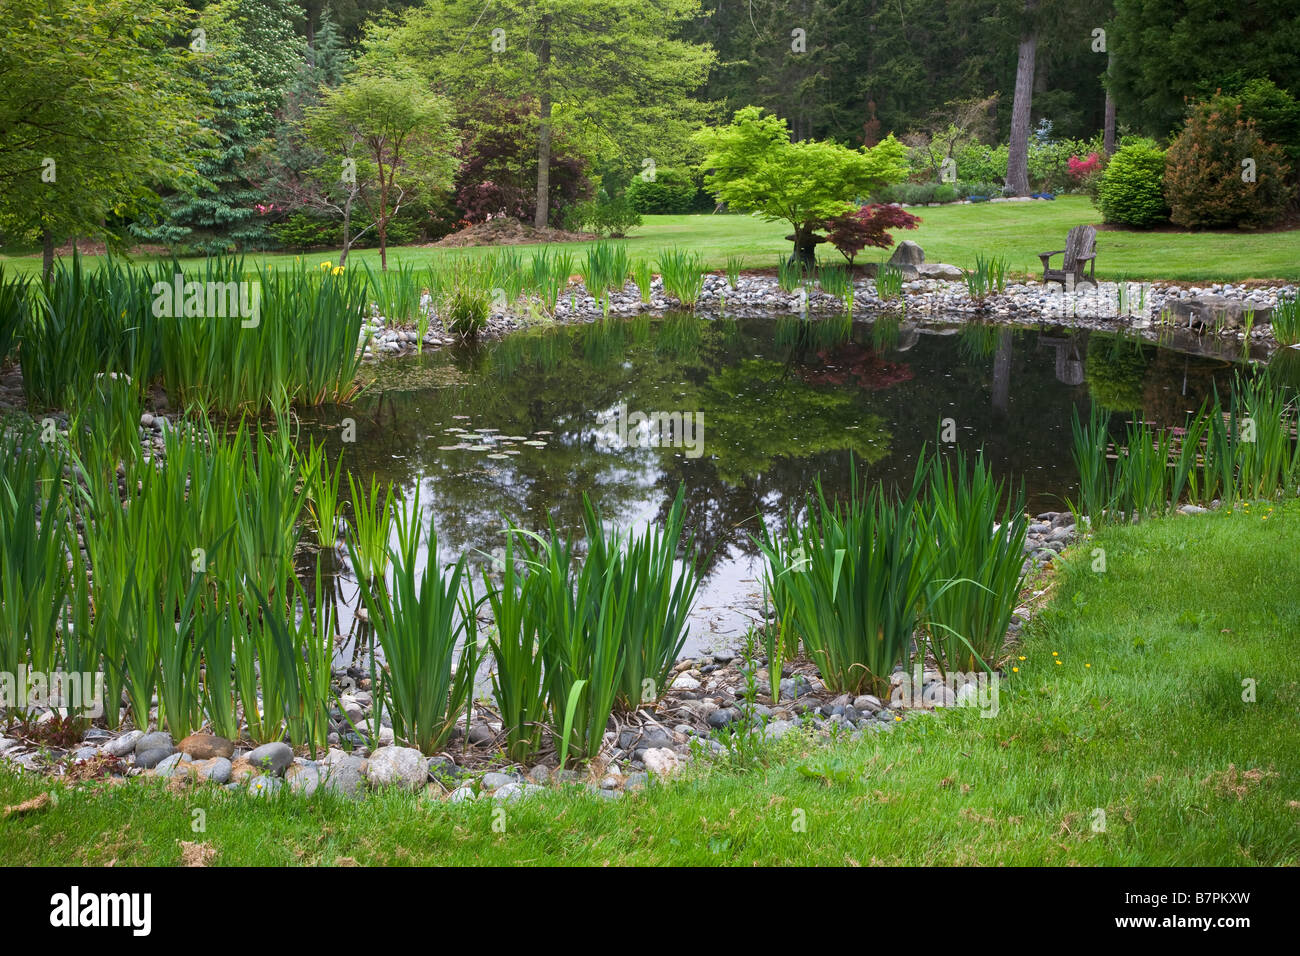 Vashon Island, WA: Pacific northwest garden pond with yellow flag iris along the margins - Stock Image